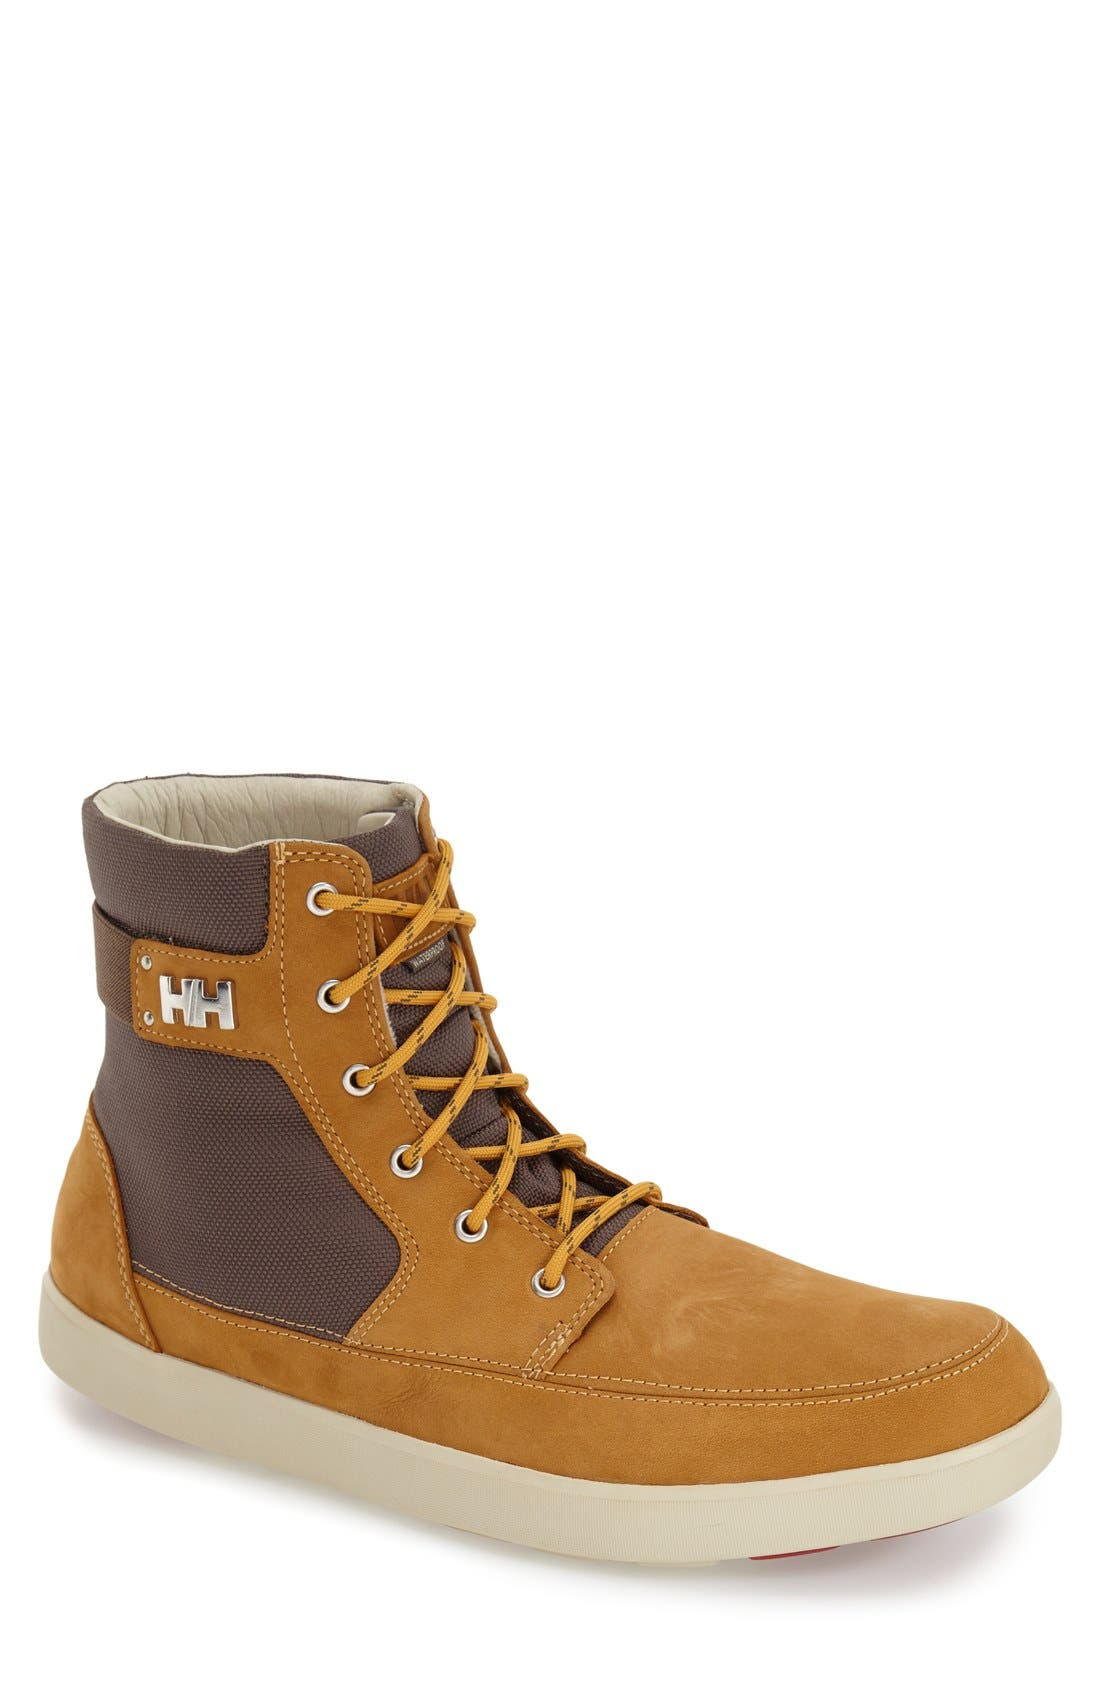 'Stockholm' Waterproof High Top Sneaker,                         Main,                         color, New Wheat